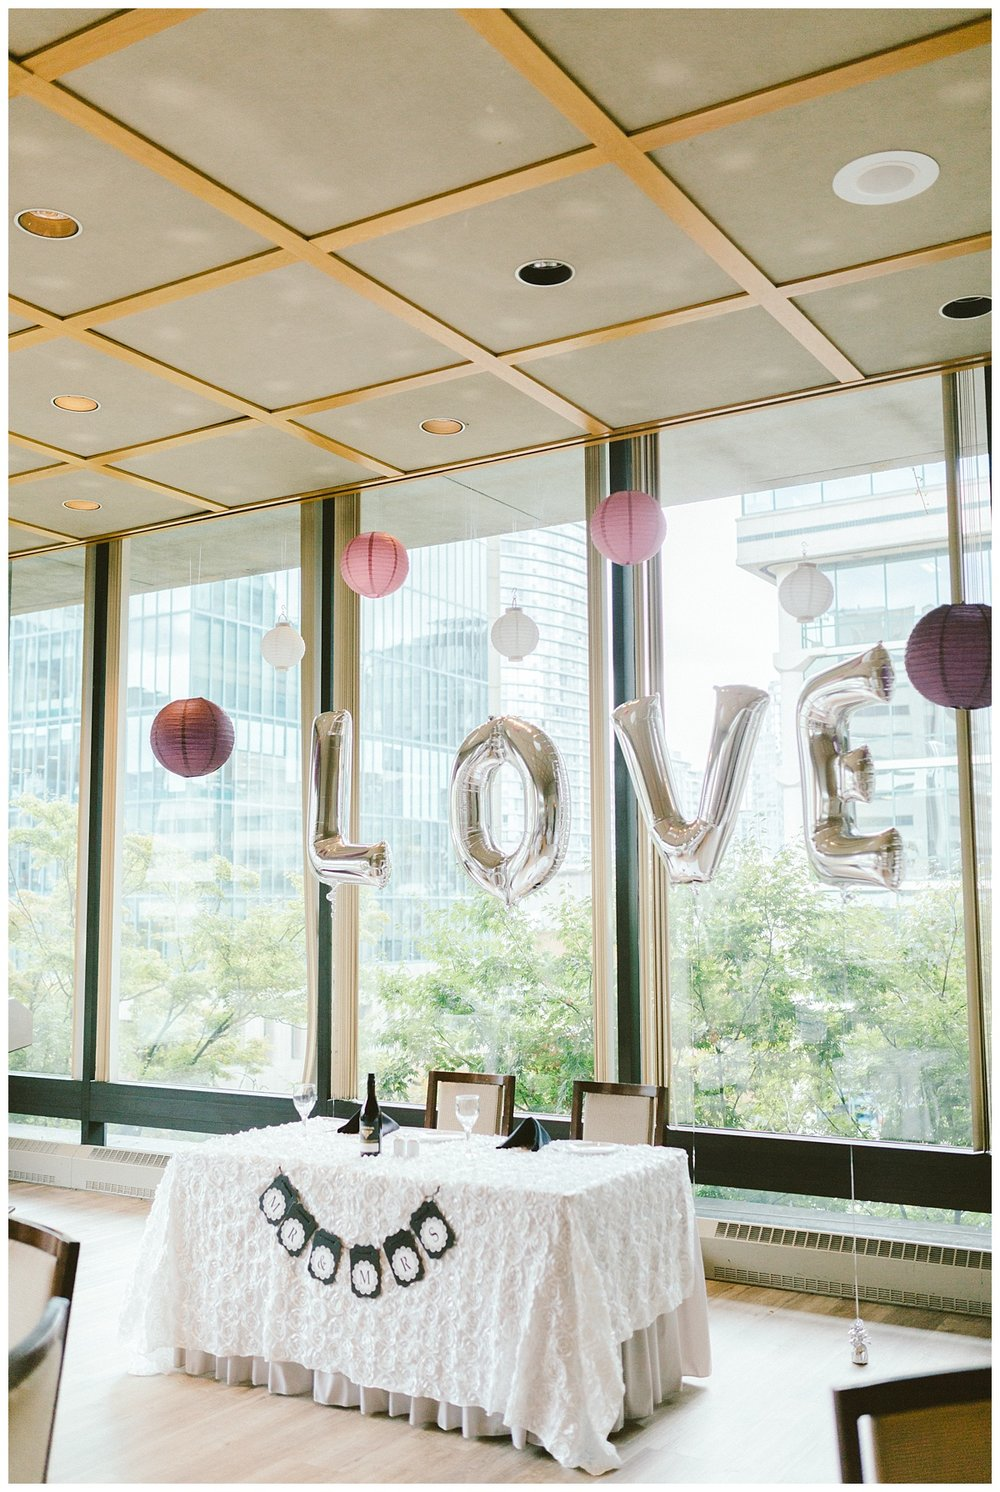 Wedding ceremony and reception at Law Courts Inn, Vancouver